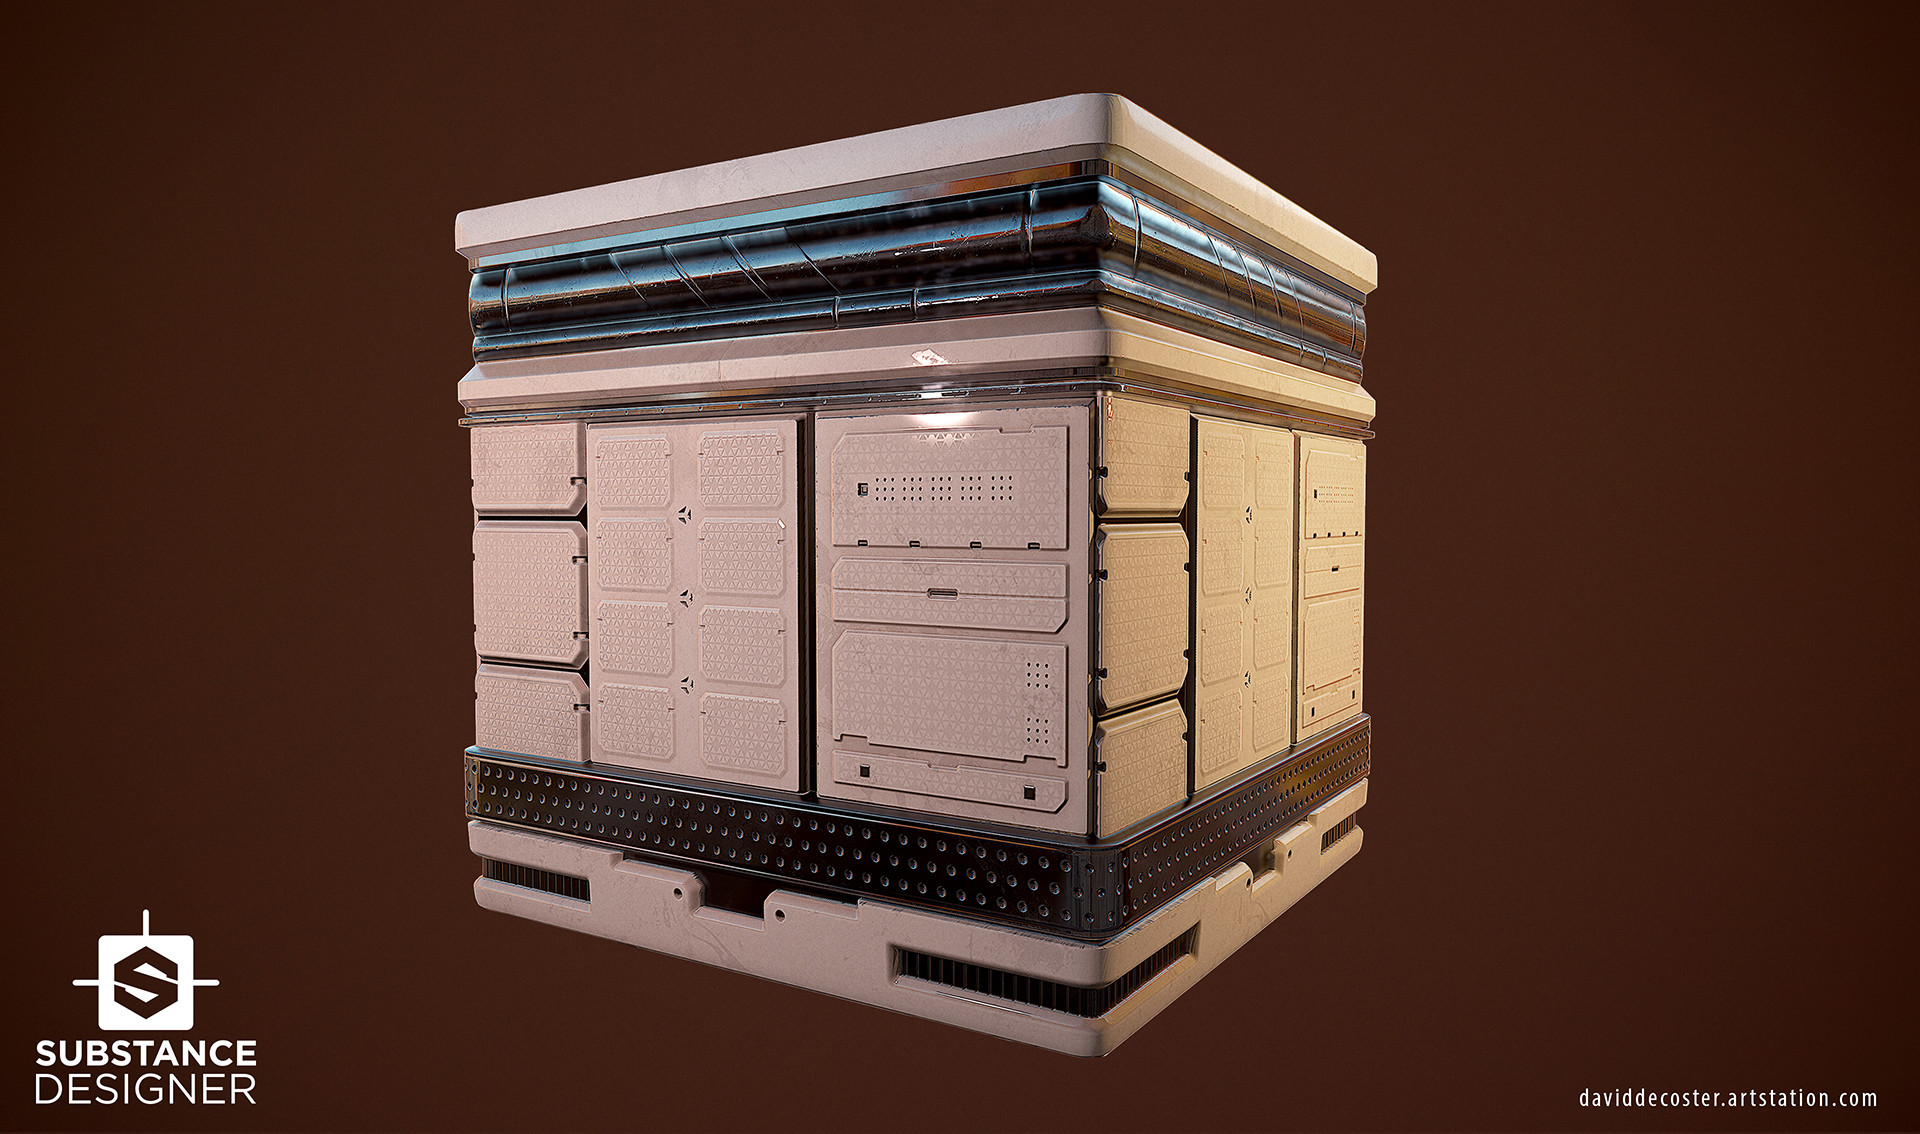 David decoster decoster tech panels 02 render 02